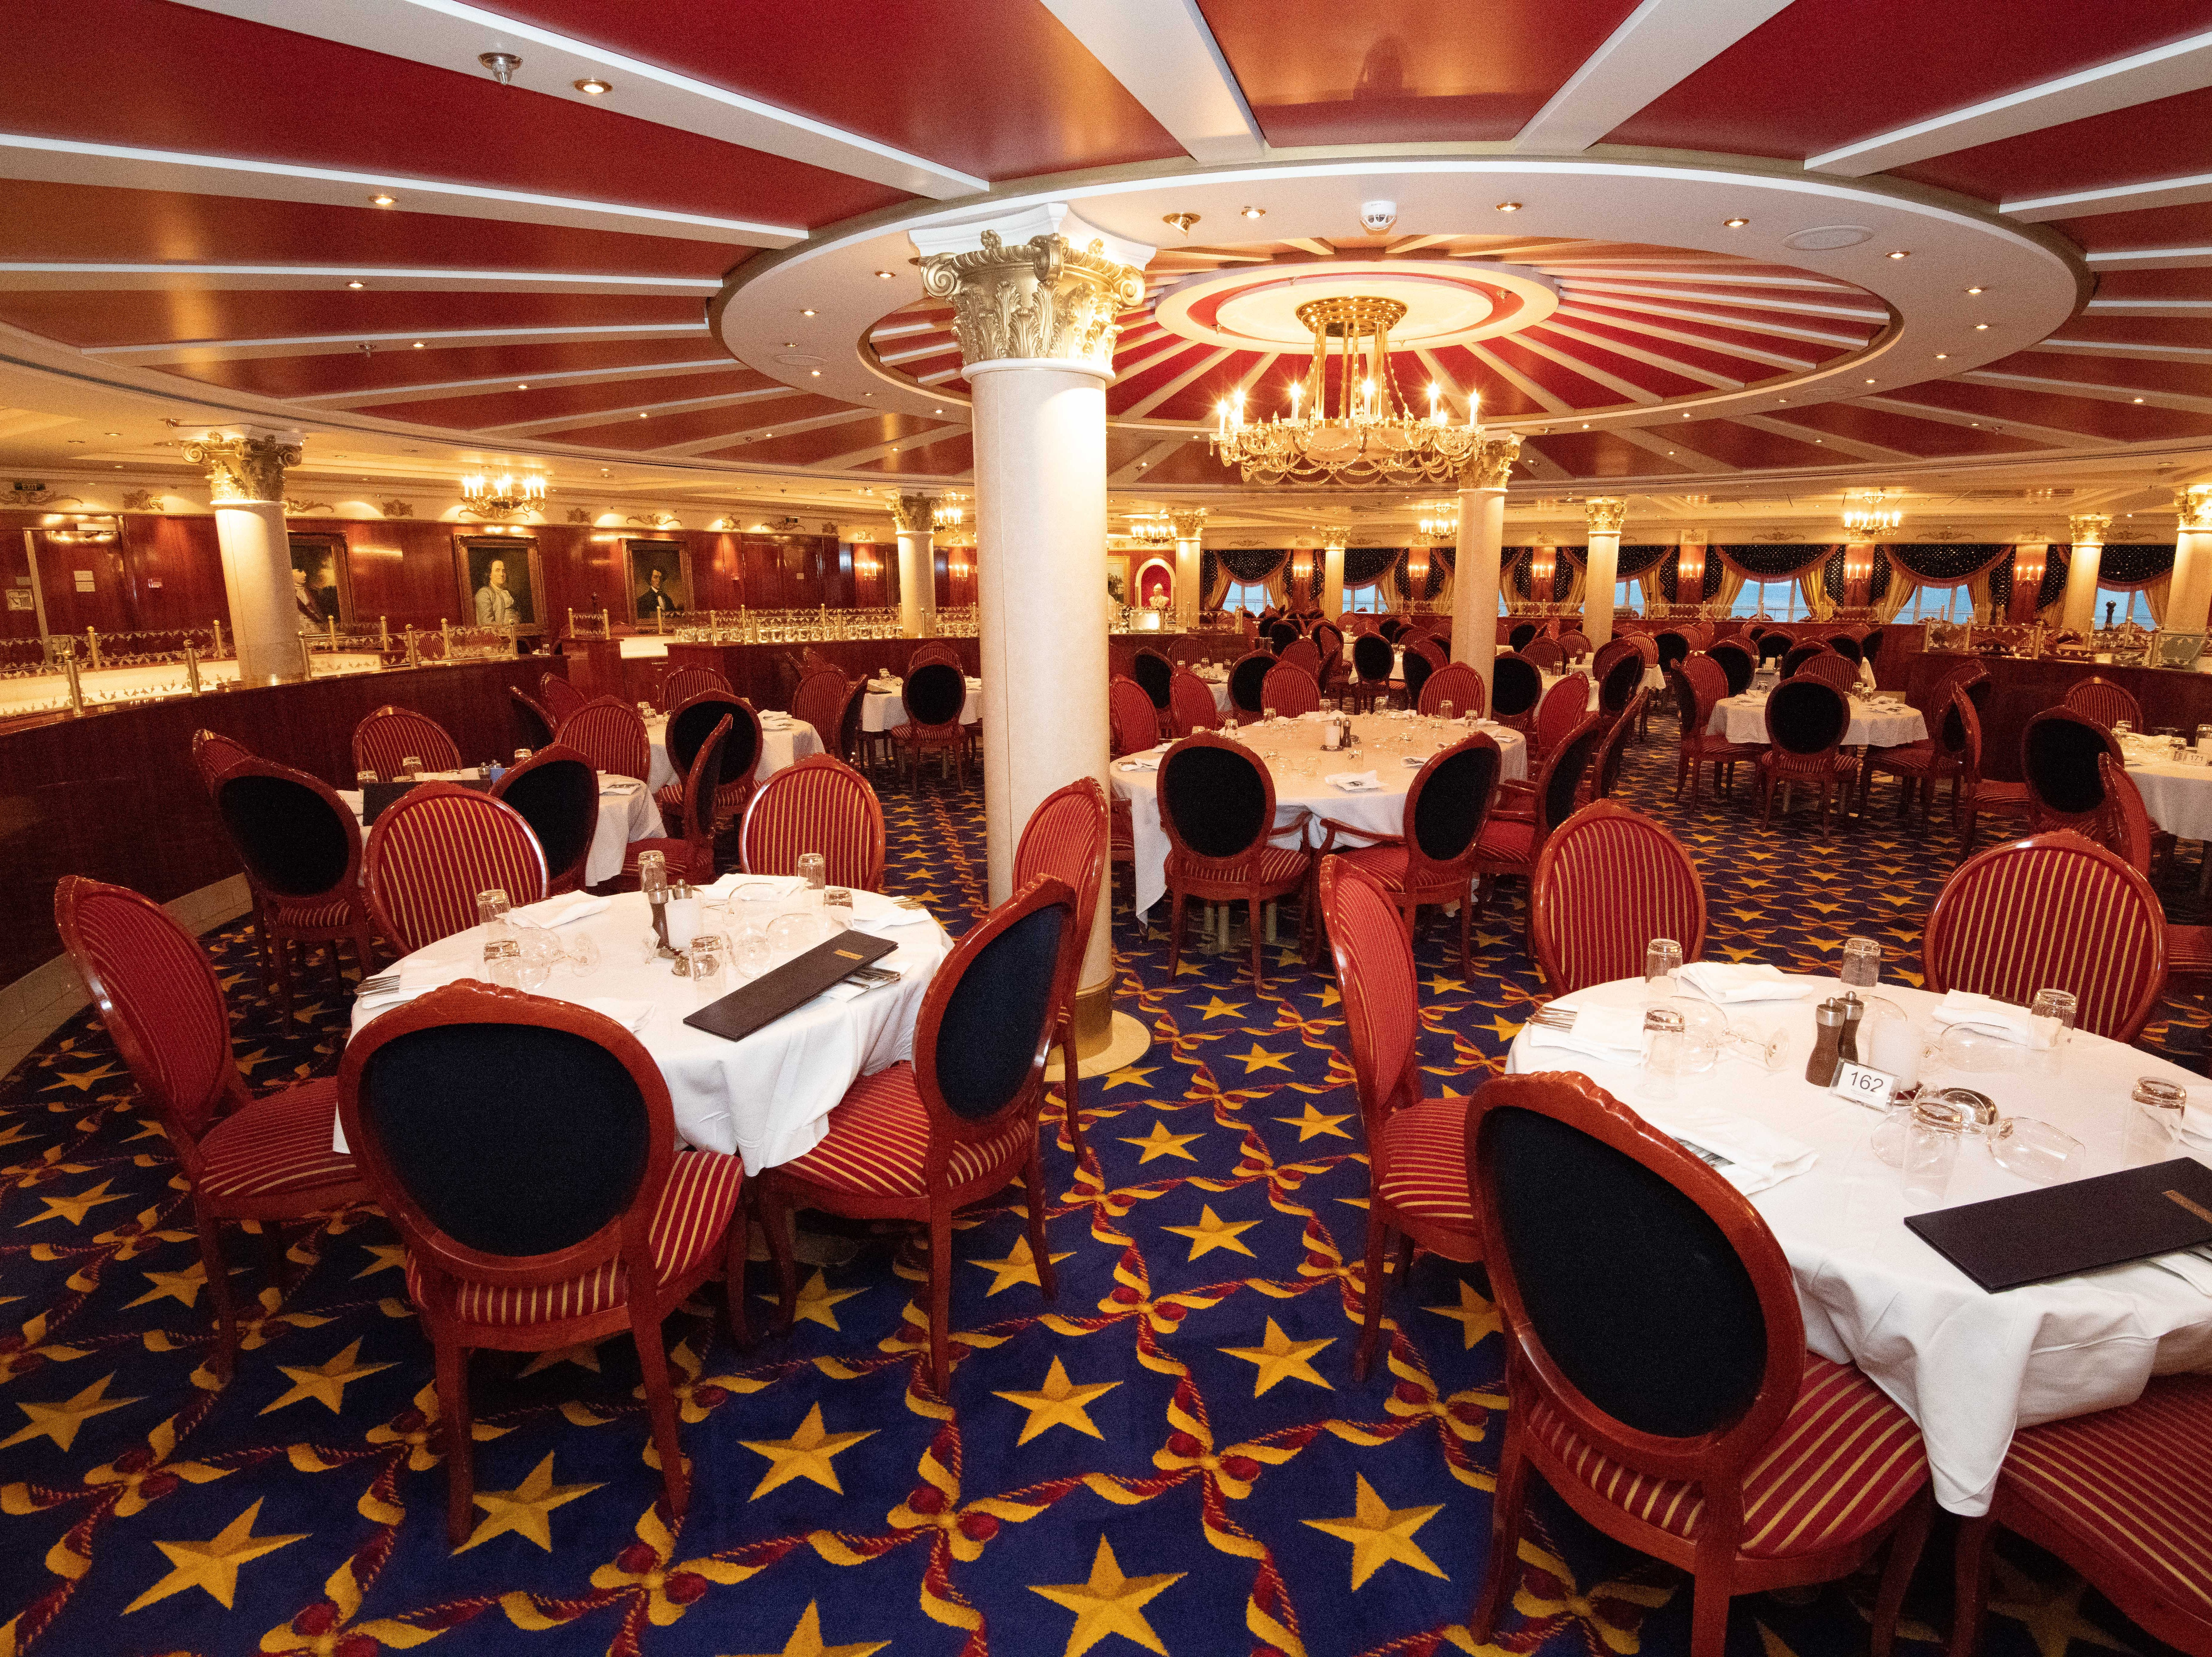 As is the case for the Skyline Main Dining Room, the cost of dining at the Liberty Main Dining Room is included in the fare for Pride of America passengers.